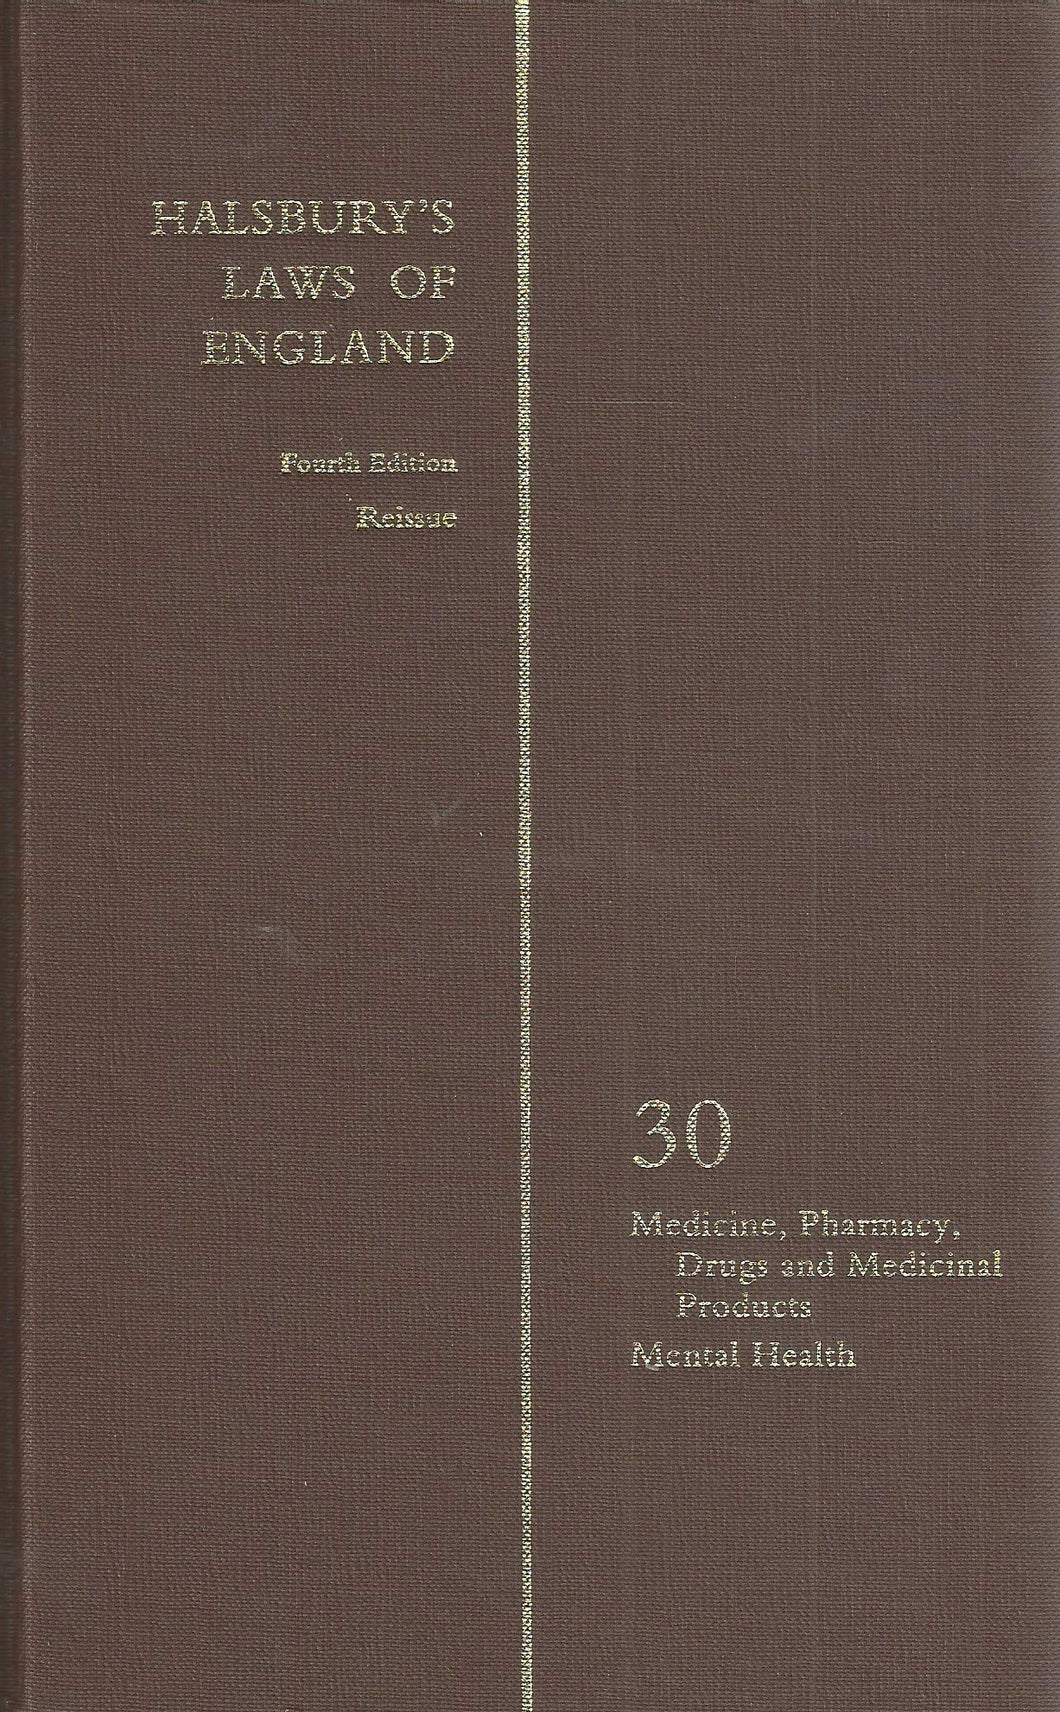 Halsbury's Laws of England 4th Edition Volume 30 Reissue